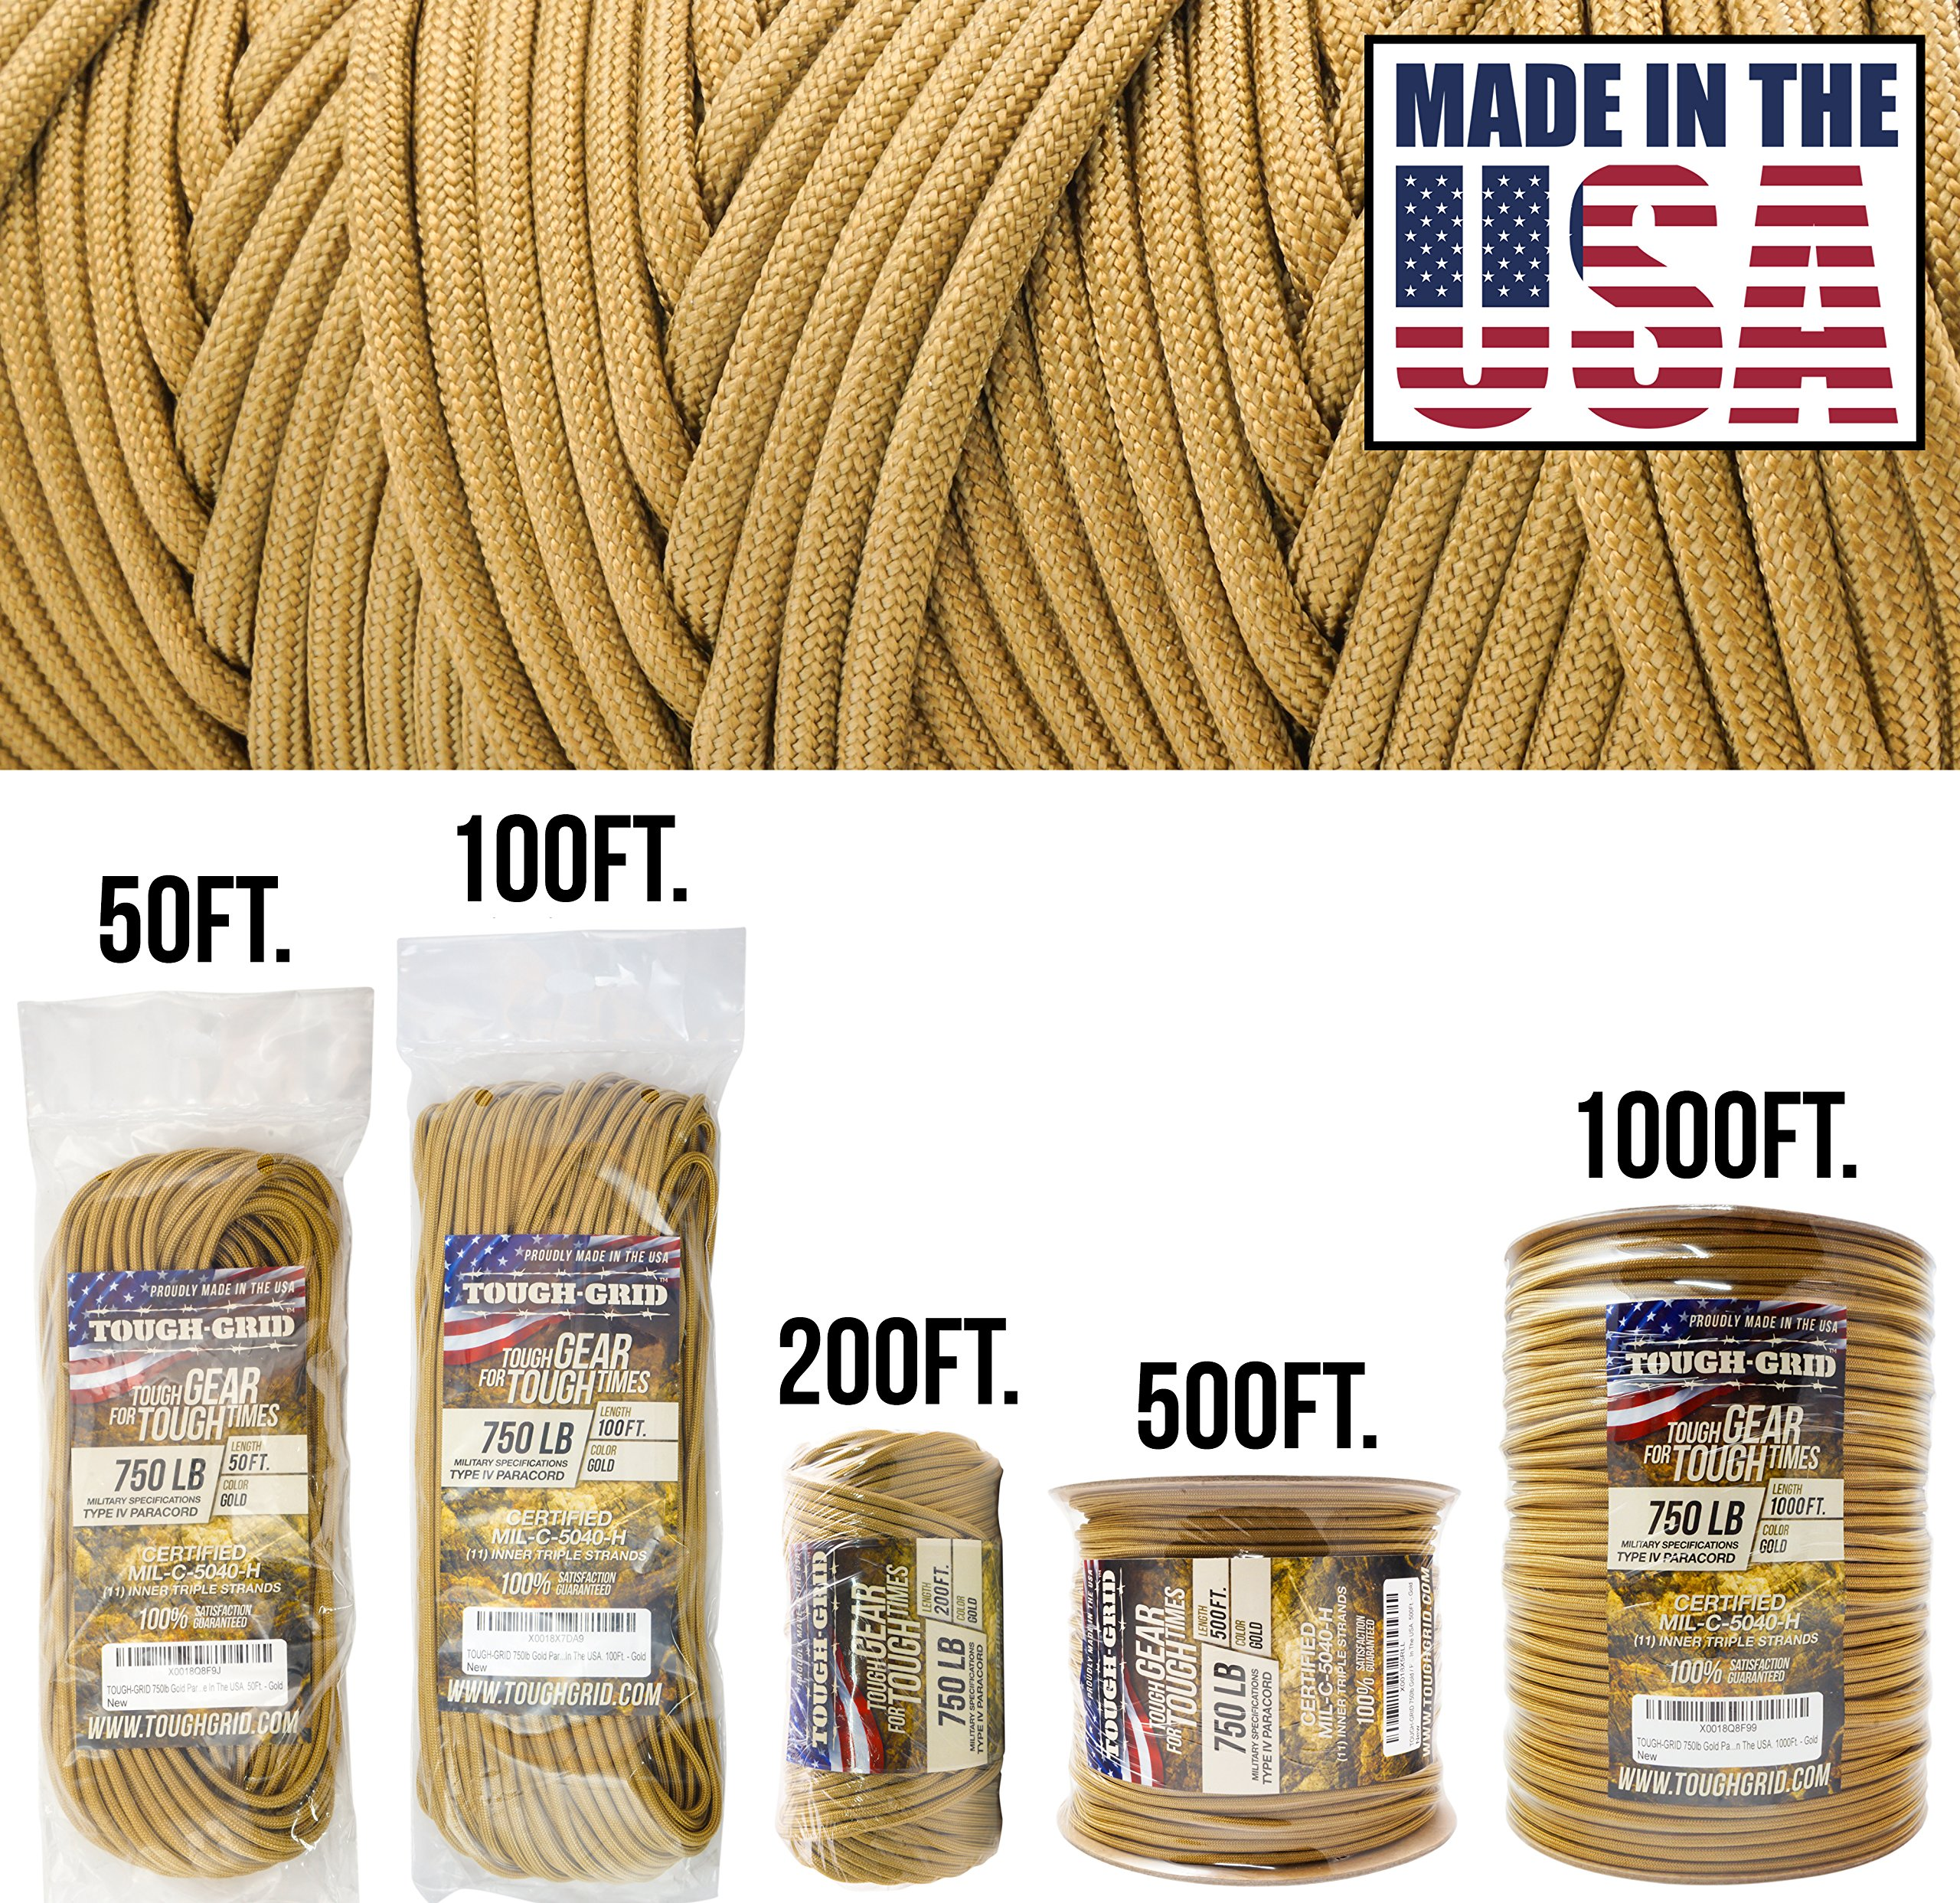 e2ab4cbb7f2a0 TOUGH-GRID 750lb Paracord Parachute Cord - Genuine Mil Spec Type IV 750lb  Paracord Used by The US Military (MIl-C-5040-H) - 100% Nylon - Made in The  USA.